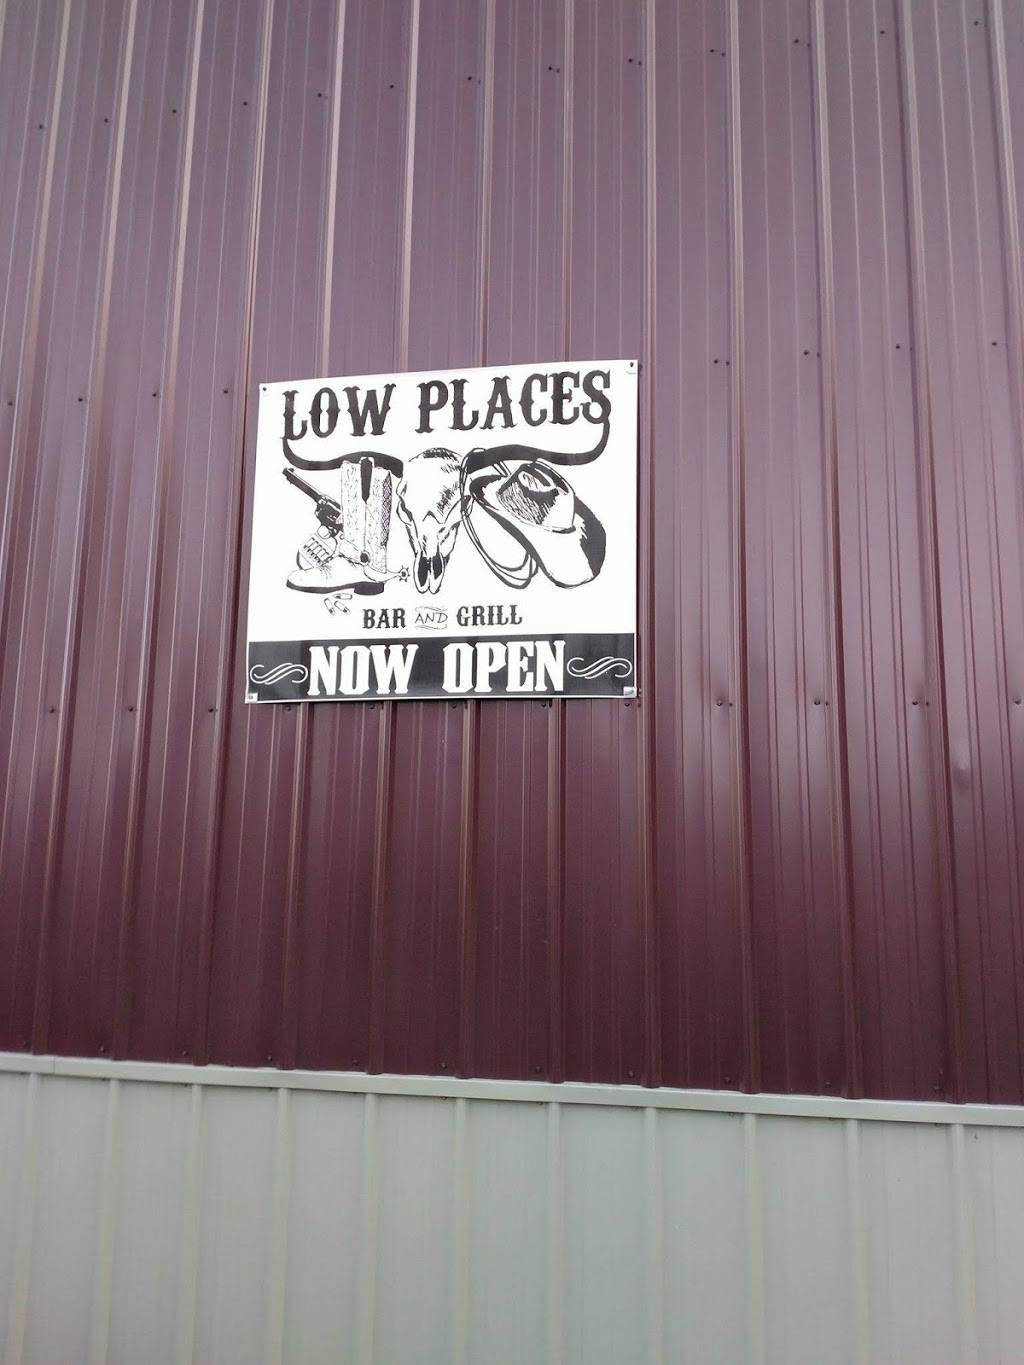 Low Places Bar and Grill (Formerly Frog Town Inn) | restaurant | 8131, 407 Central Dr, Cashton, WI 54619, USA | 6086545779 OR +1 608-654-5779